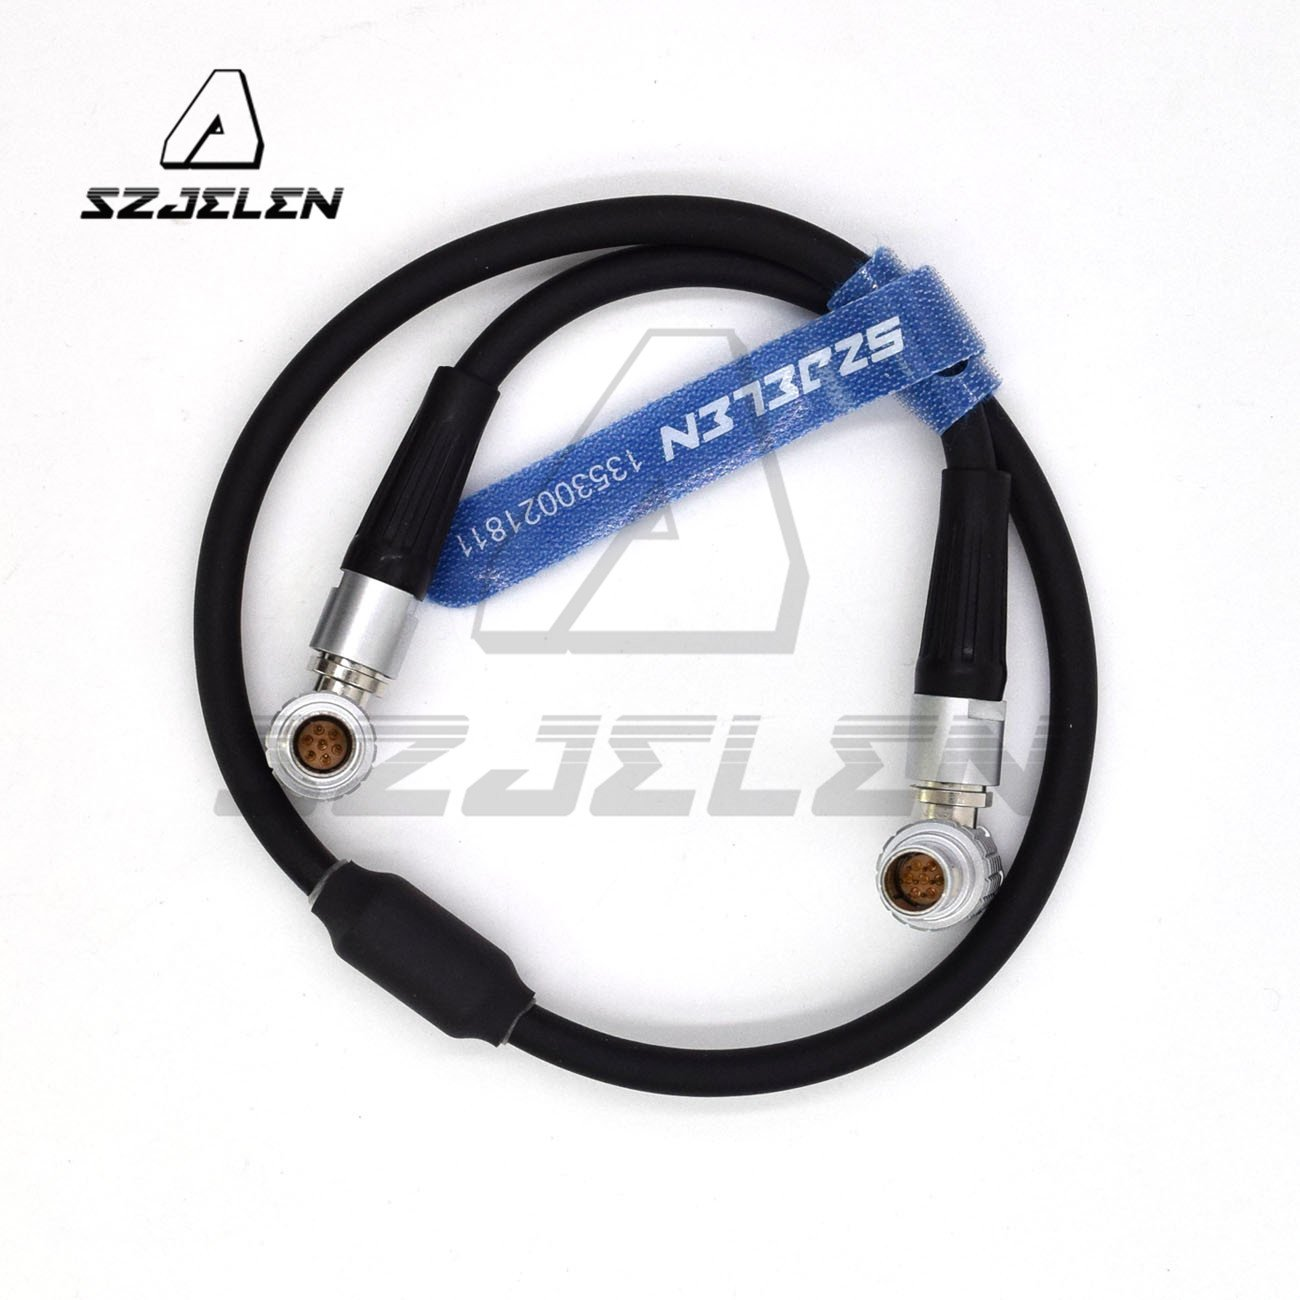 SZJELEN TILTA Nucleus-M WLC-T03 Wireless Follow Focus Lens Control Nucleus M cable, 0B 7pin to 7pin Nucleus-M Cable (Wireless Follow cable)